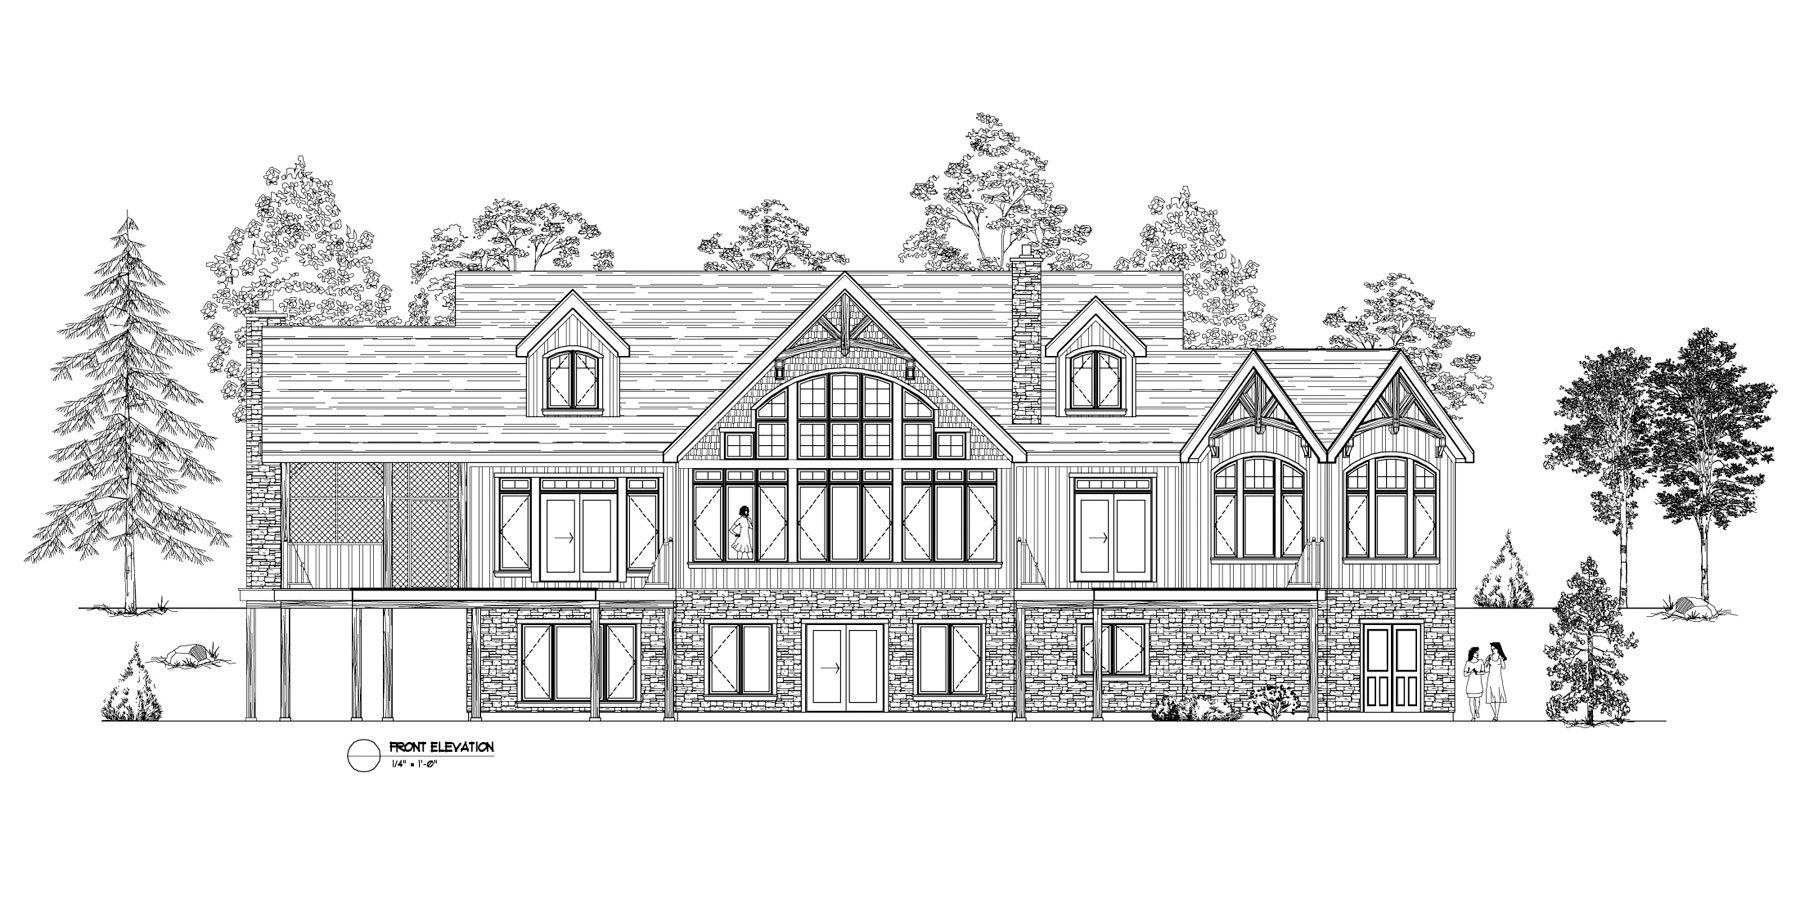 Normerica Timber Frames, House Plan, The Fremont 3582, Front Elevation